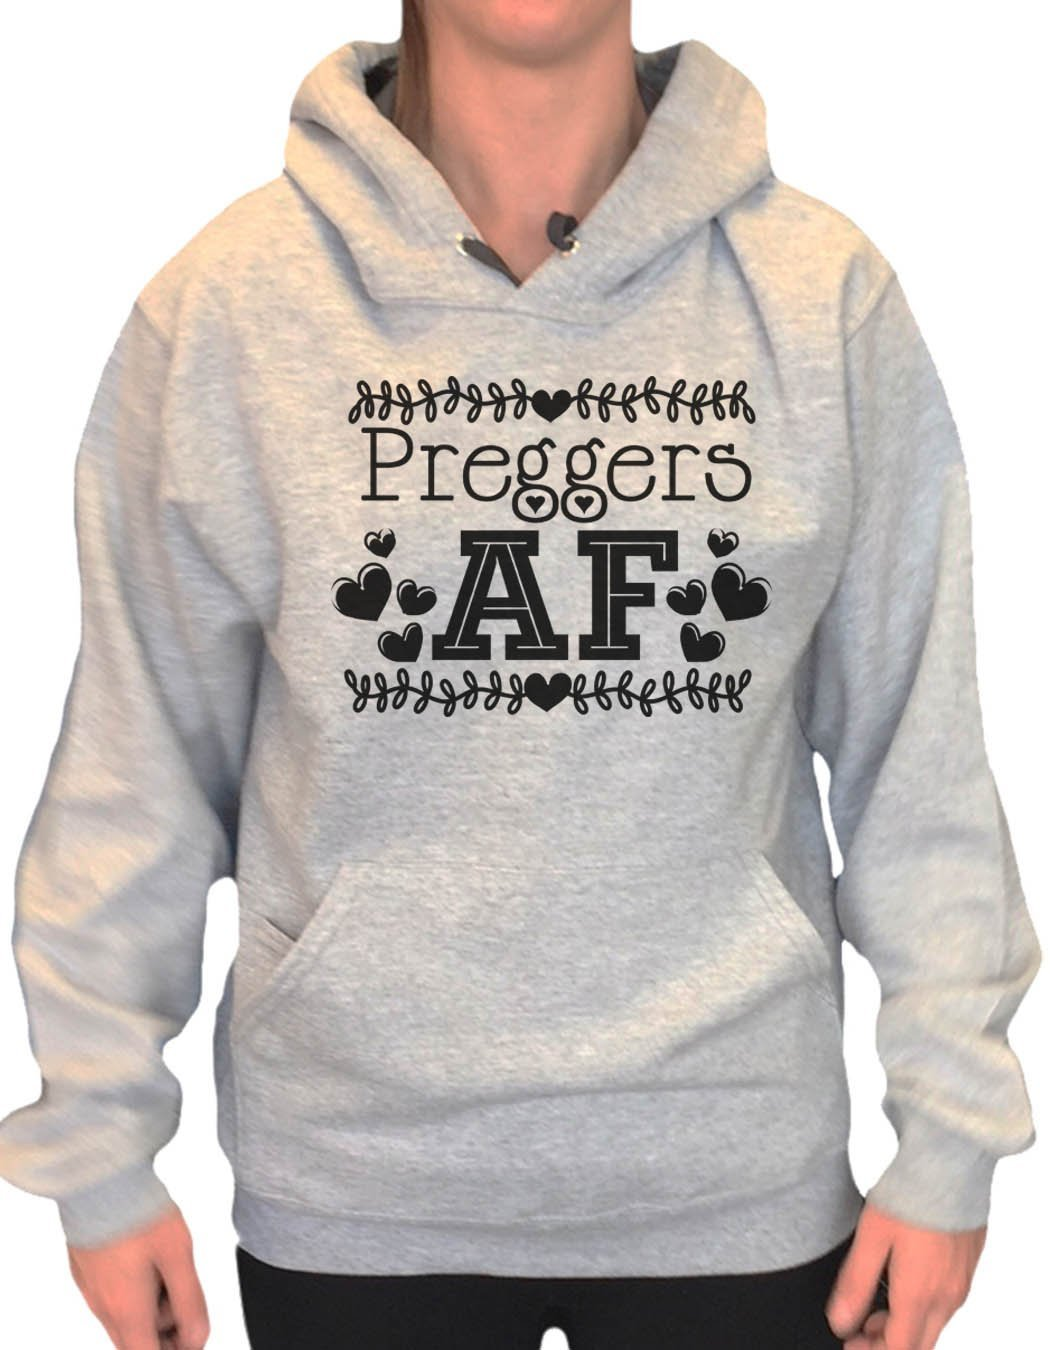 UNISEX HOODIE - Preggers Af - FUNNY MENS AND WOMENS HOODED SWEATSHIRTS - 2255 Funny Shirt Small / Heather Grey